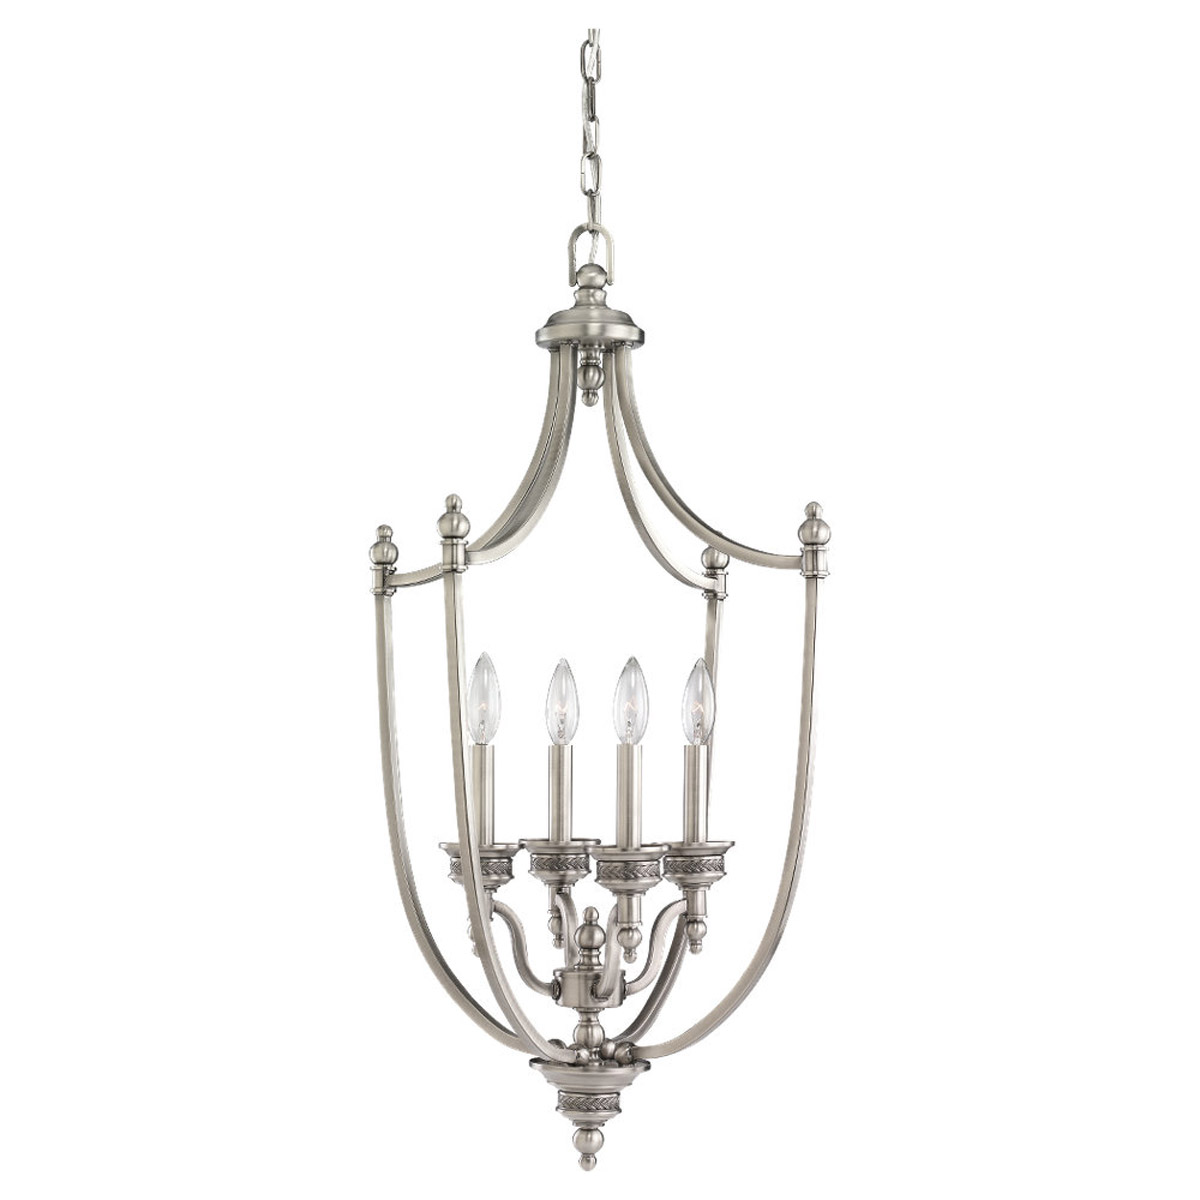 Sea Gull 51350-965 Laurel Leaf 4 Light 19 inch Antique Brushed Nickel Foyer Pendant Ceiling Light photo